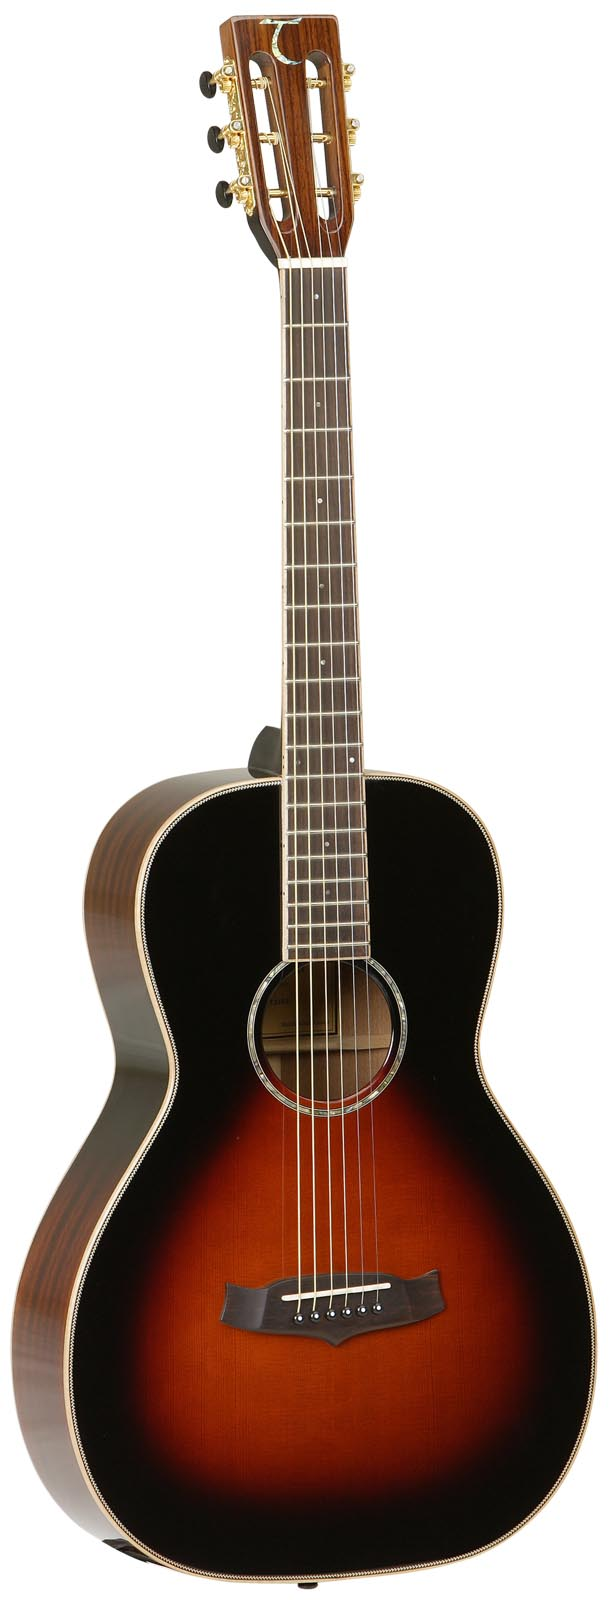 tanglewood tw73 vs parlor guitar discount music center orlando. Black Bedroom Furniture Sets. Home Design Ideas